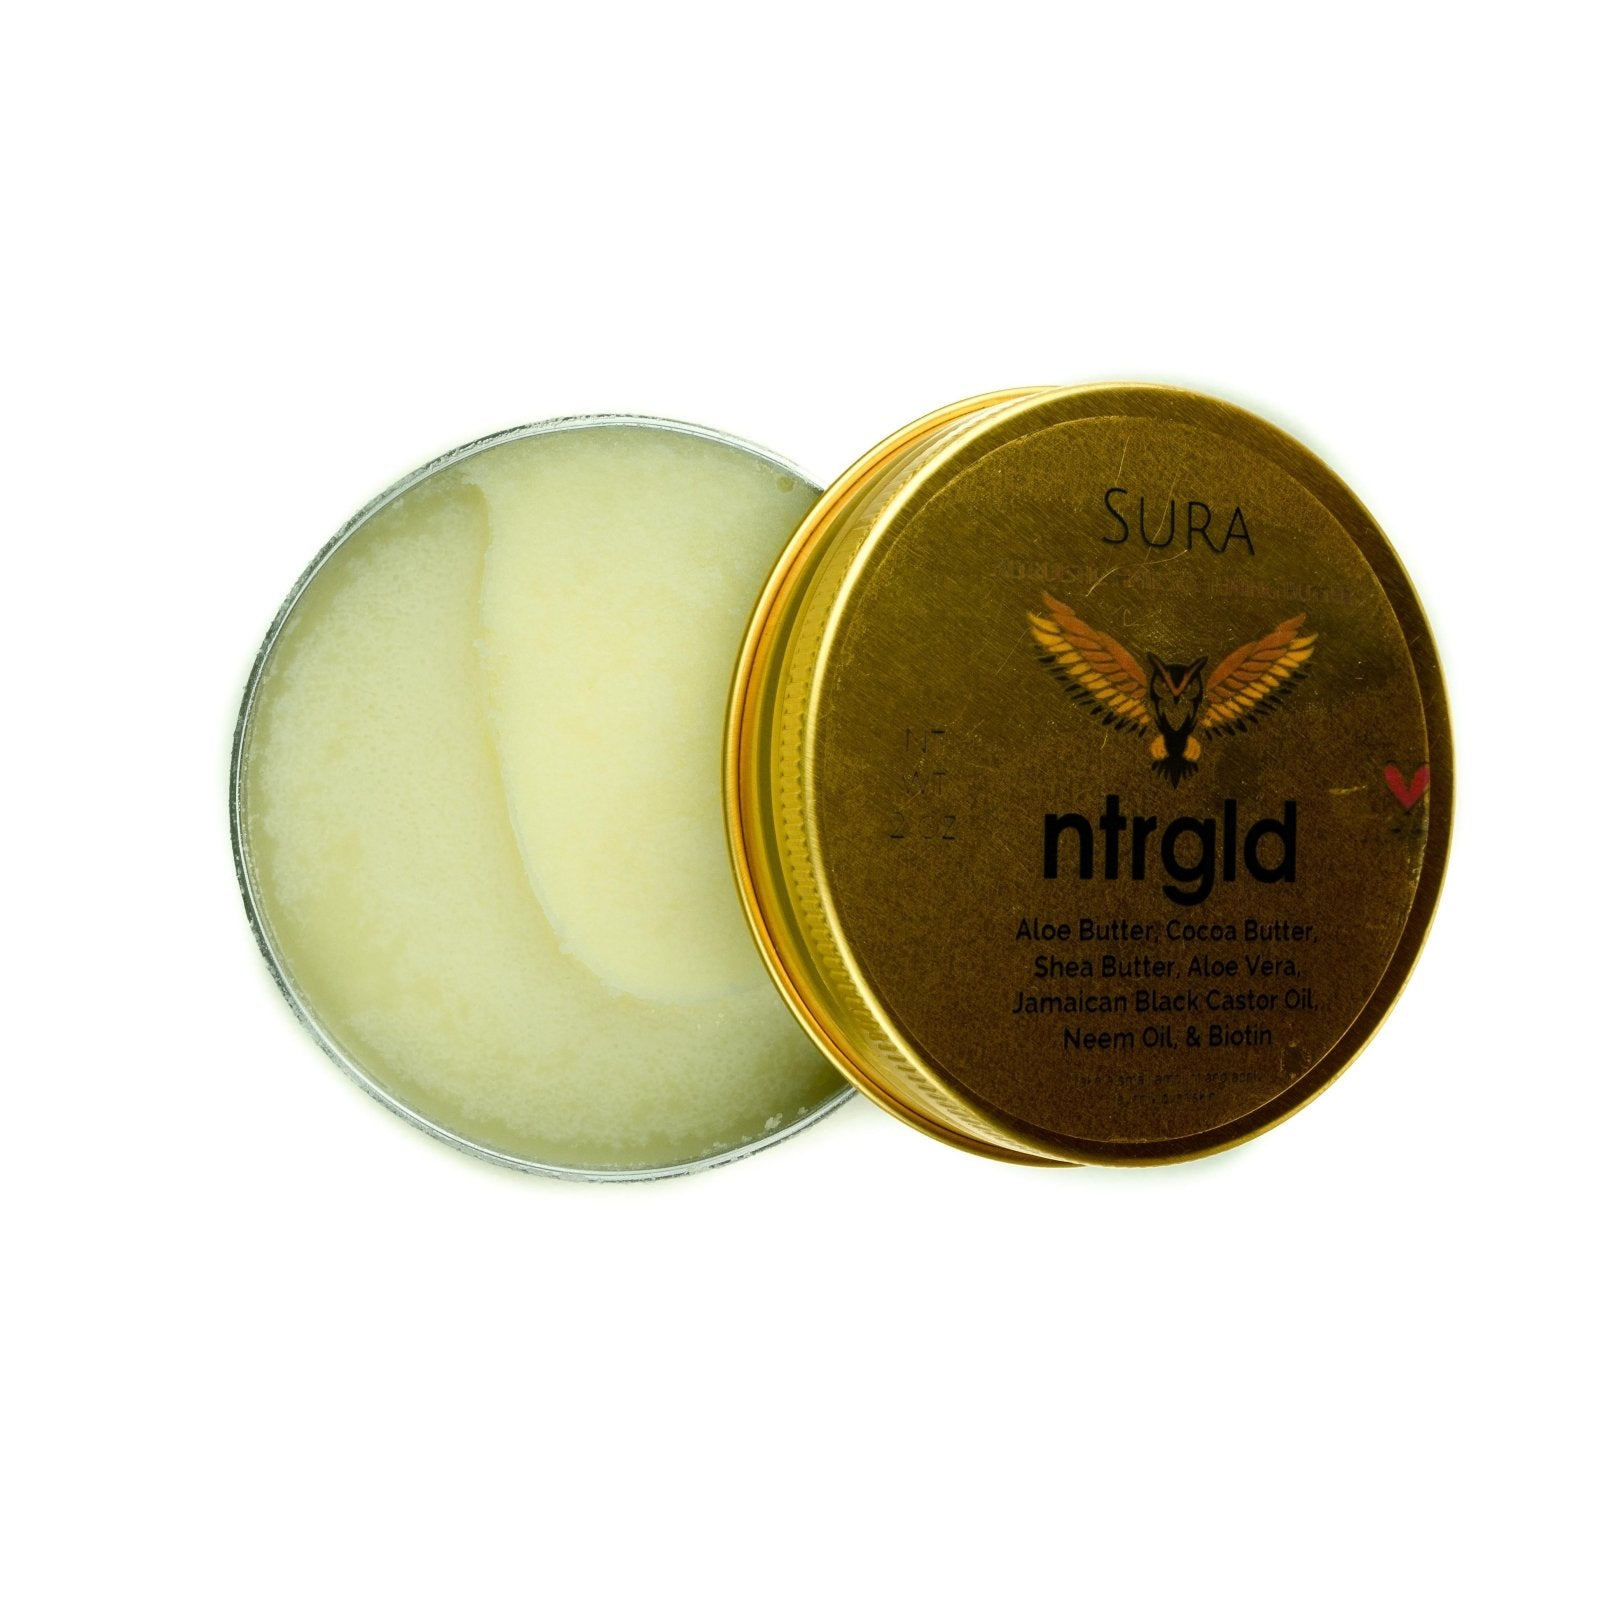 Sura - Hair Softening Butter - Neter Gold - NTRGLD - NETER GOLD - All natural body care products designed to increase your natural godly glow. - hair growth - eczema - dry skin